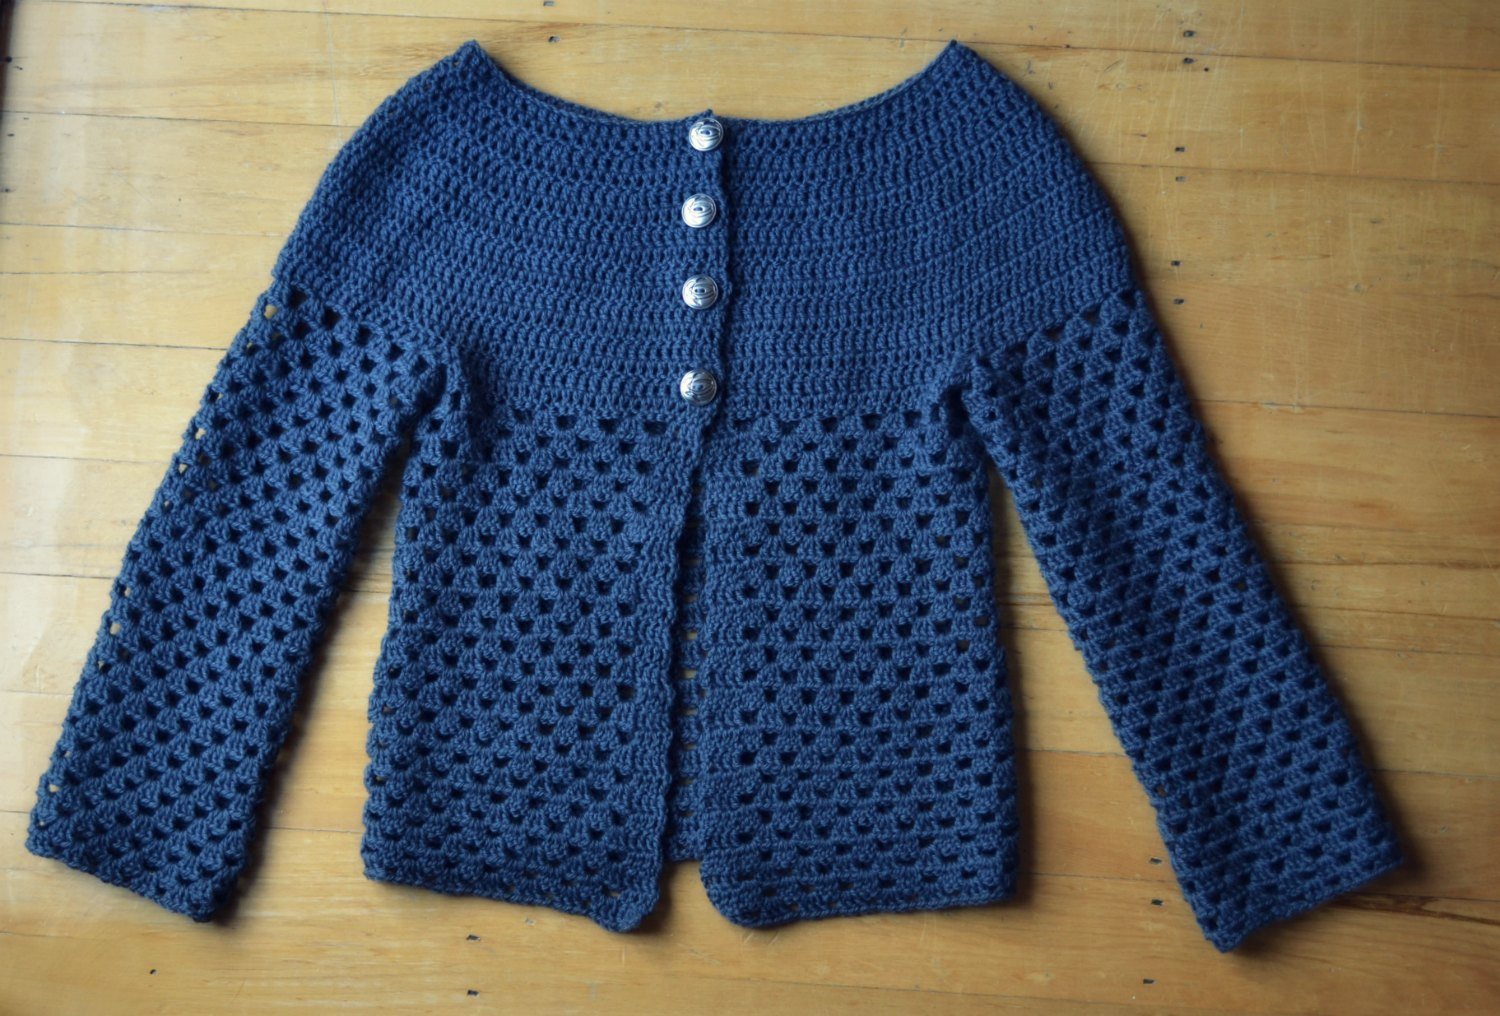 New crochet cardigan – The Green Dragonfly